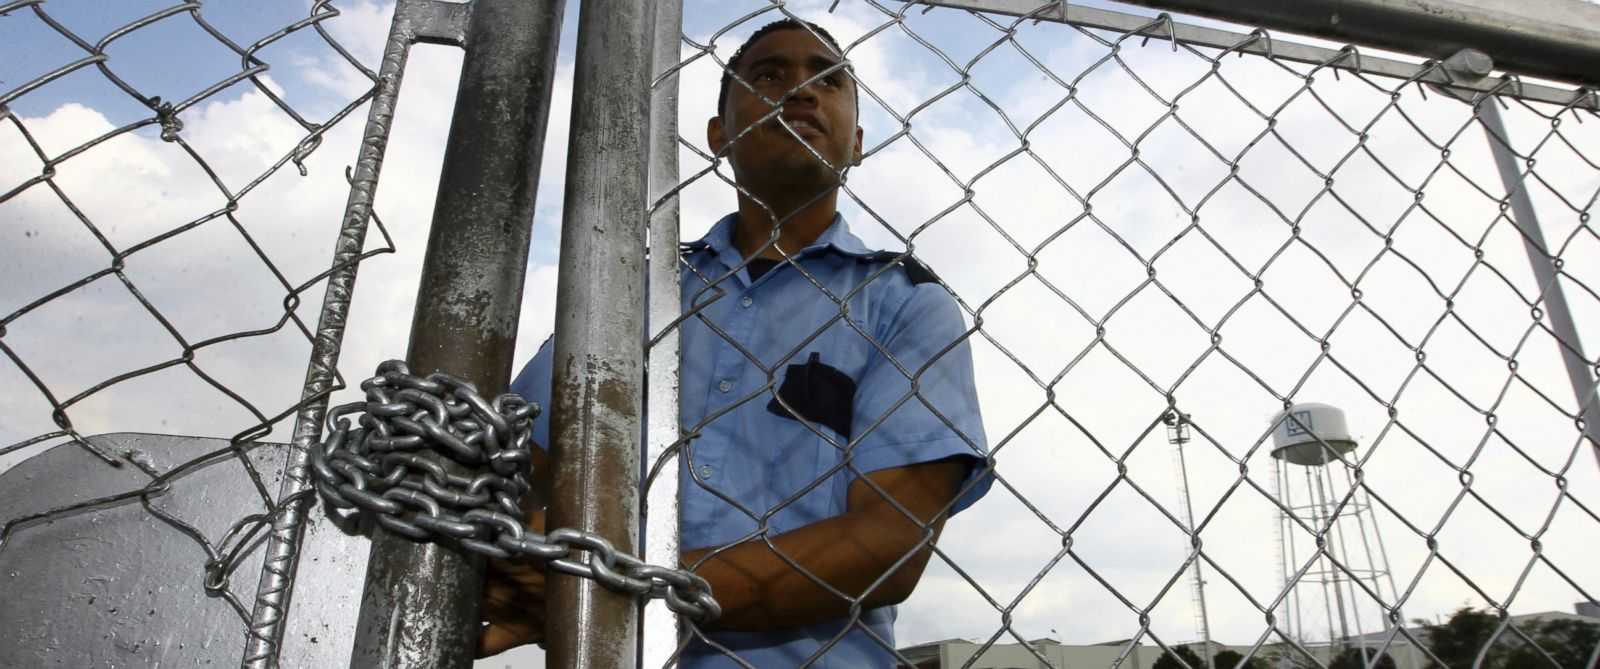 PHOTO: A security guard stands behind a fence at the General Motors assembly plant in Valencia, Venezuela, June 19, 2009.